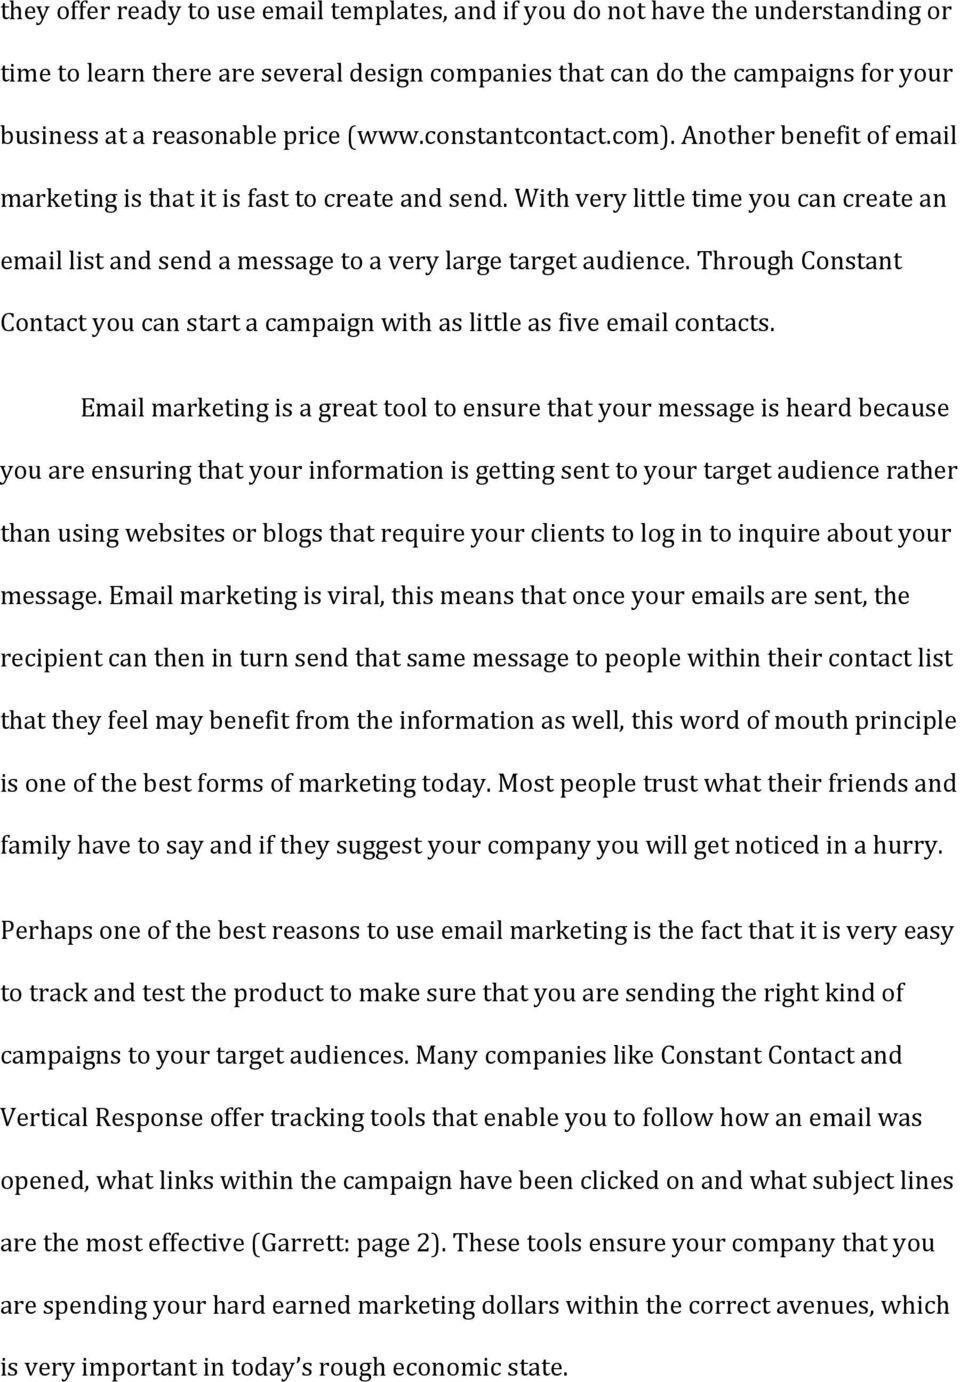 With very little time you can create an email list and send a message to a very large target audience. Through Constant Contact you can start a campaign with as little as five email contacts.